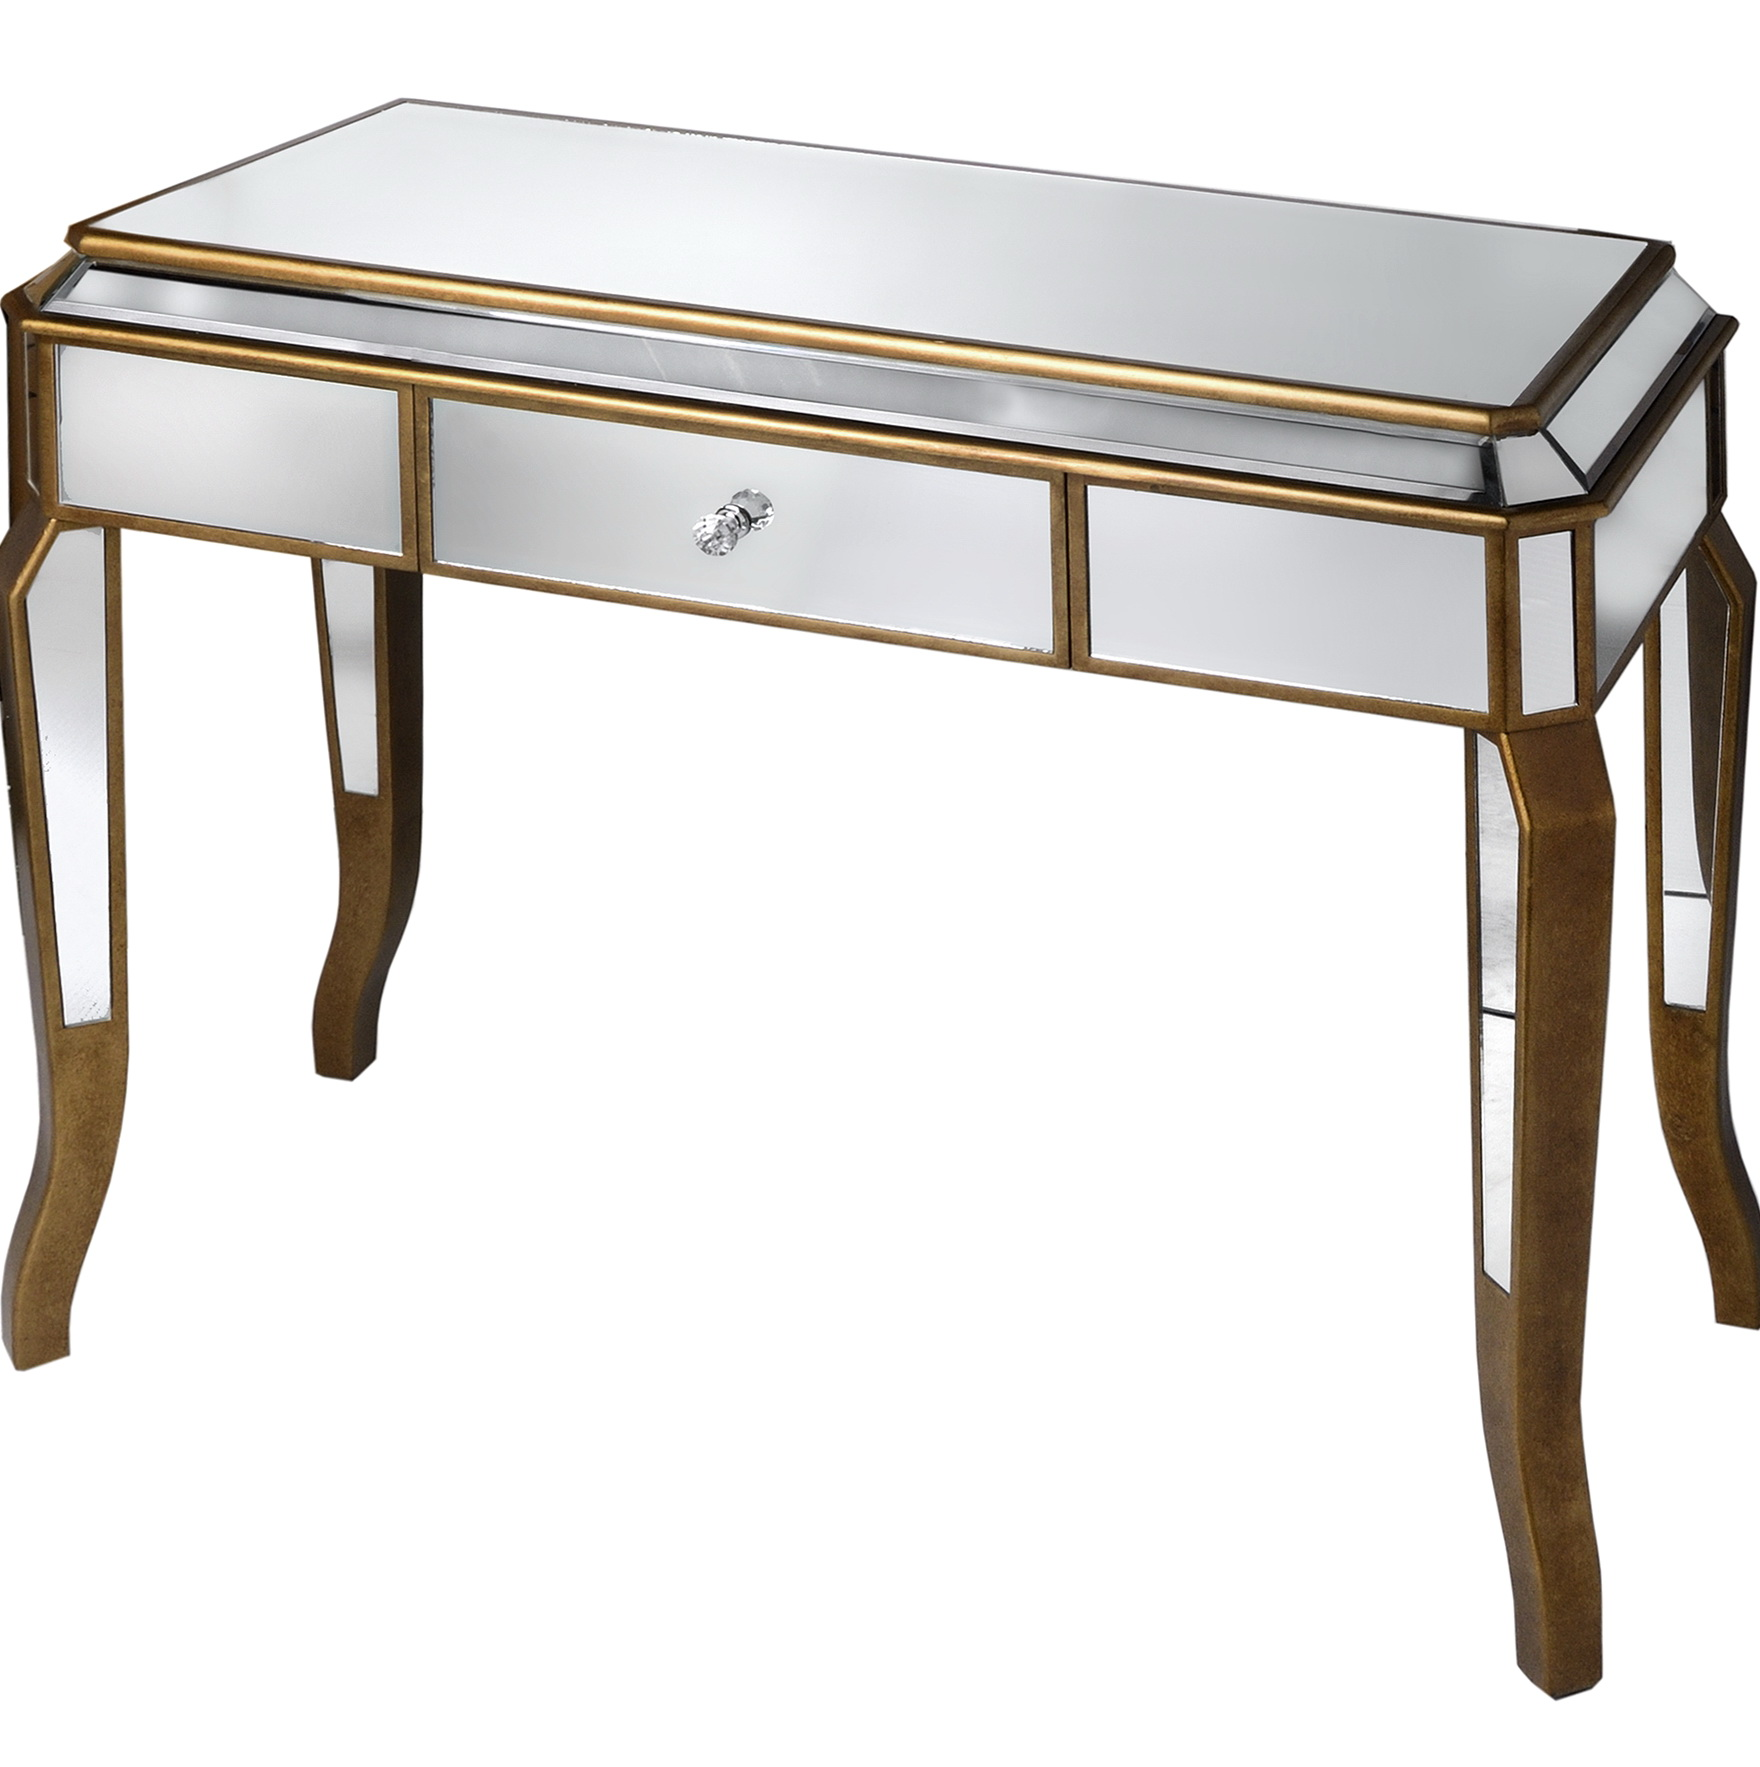 Mirrored Dressing Table With Drawers